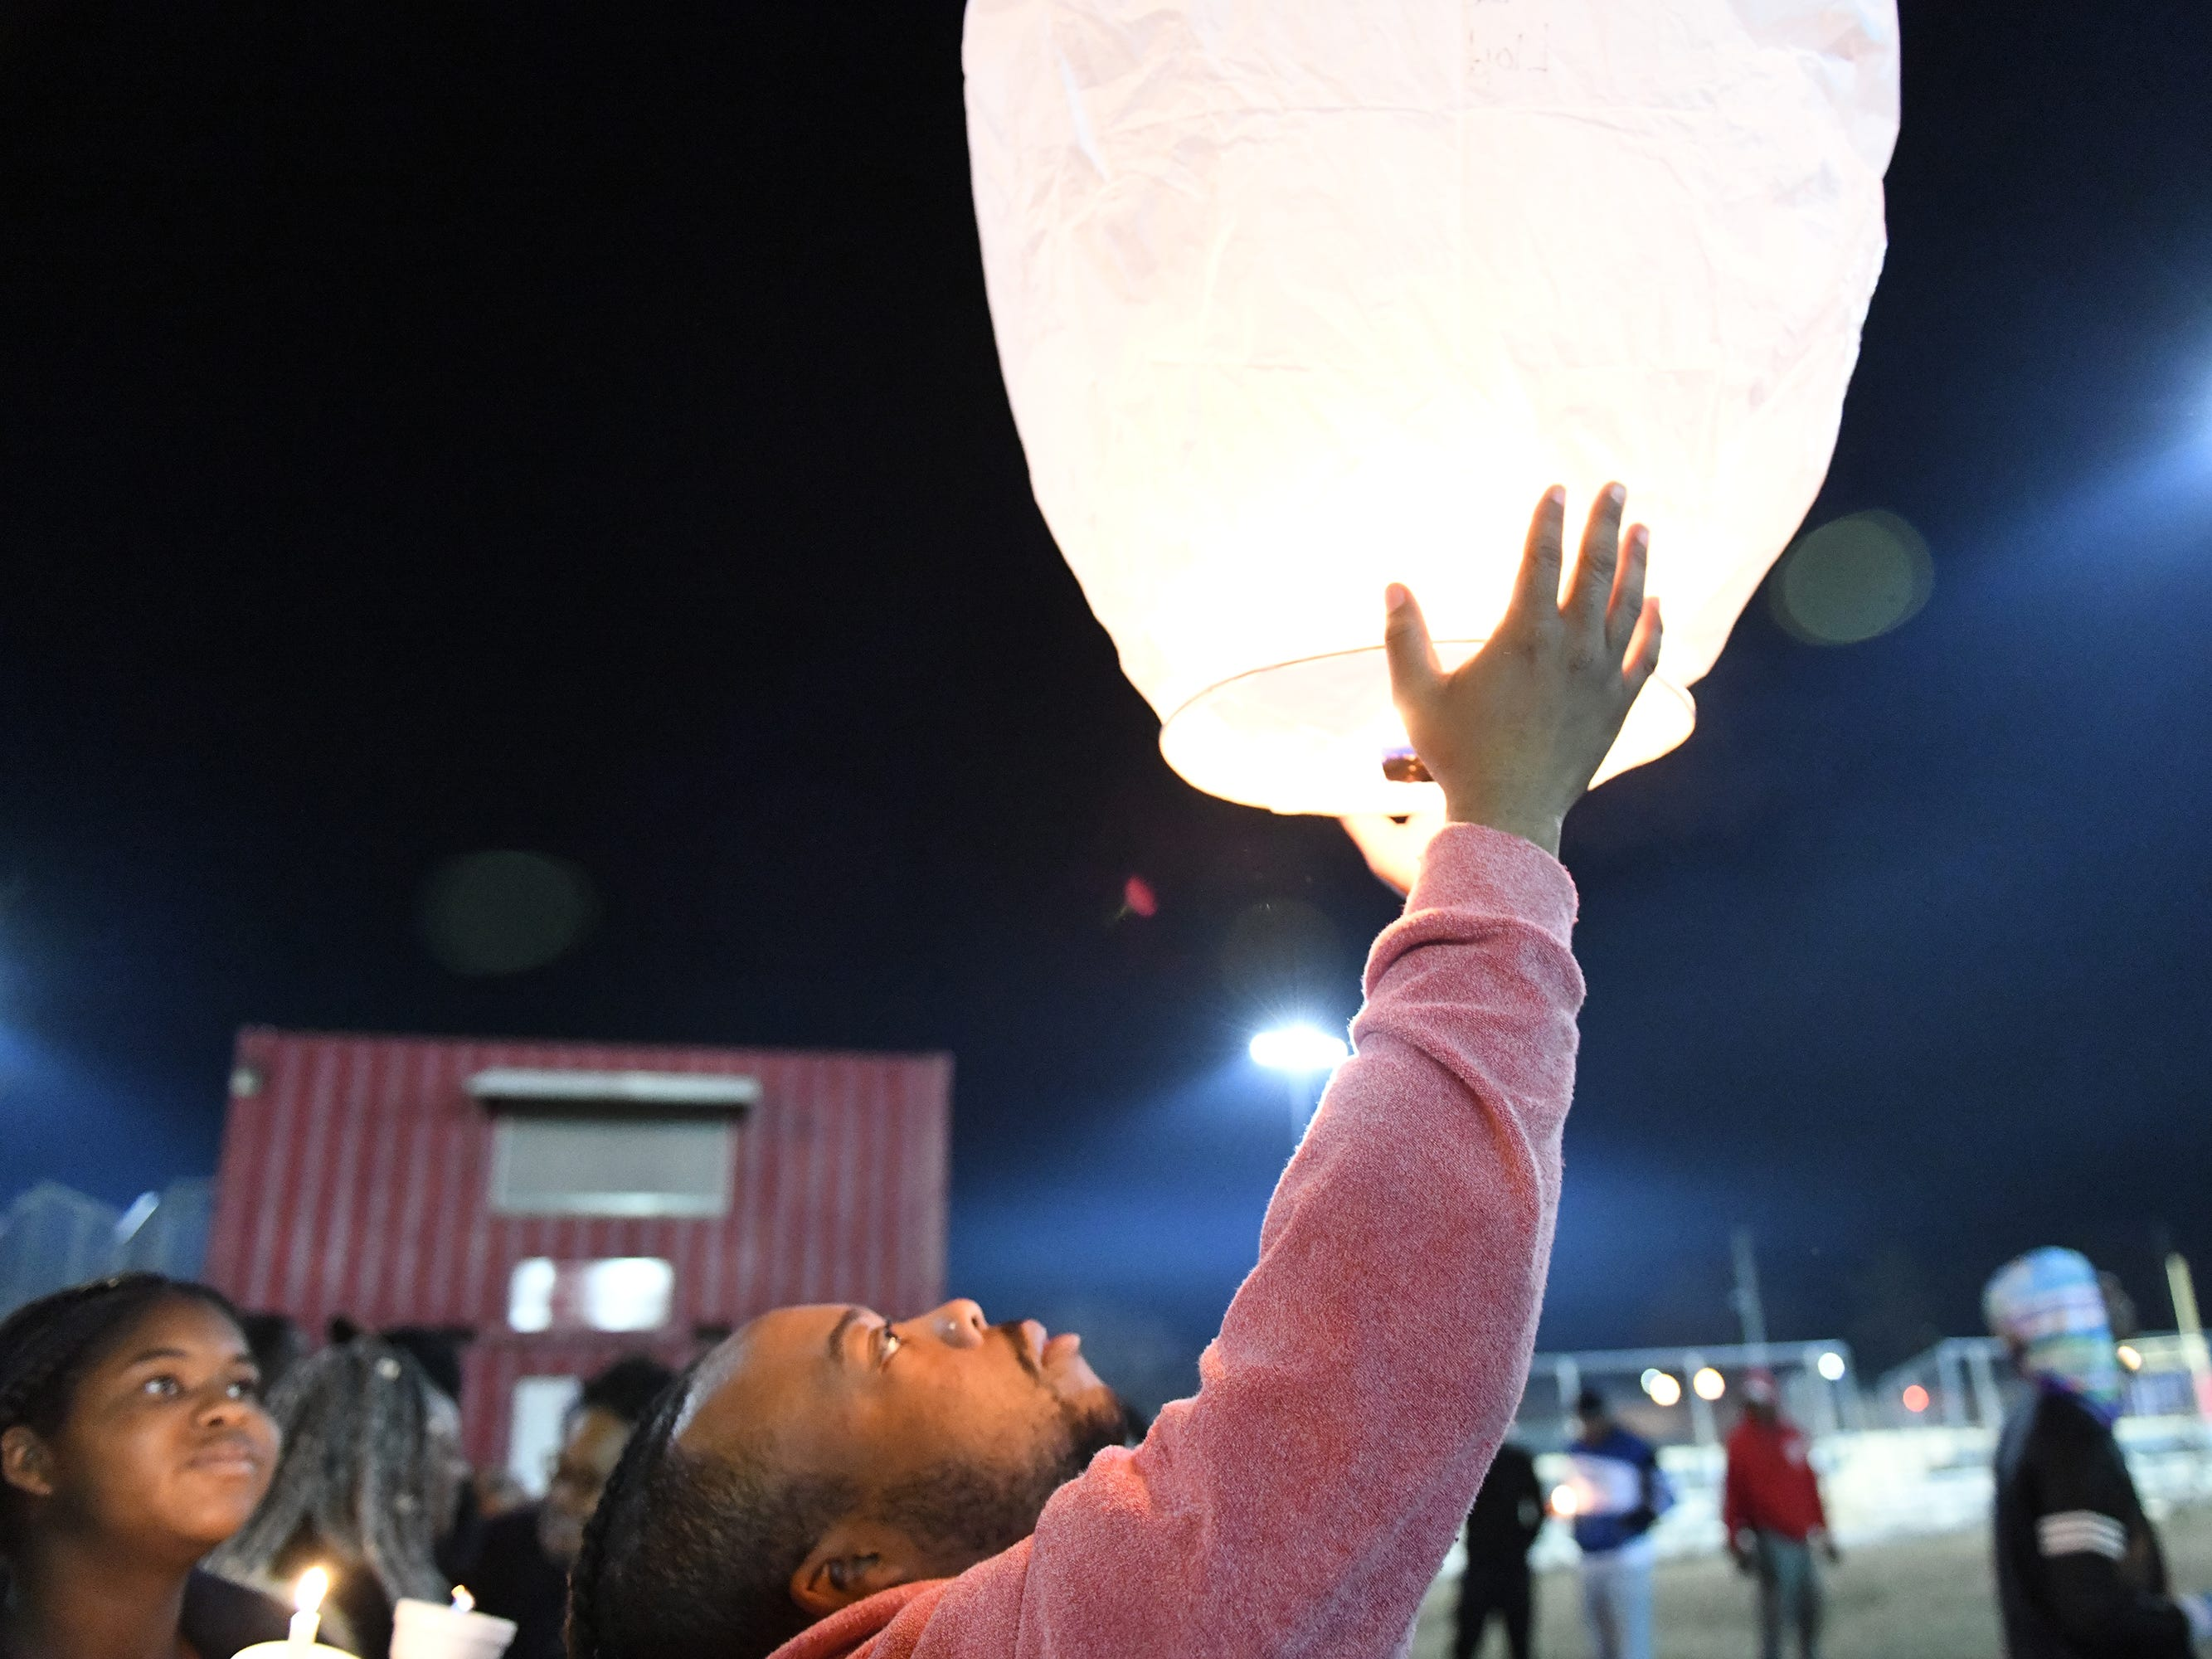 Balloons are set free at a vigil for 32-year-old Walter L. Brown III at the Vineland Midget Football grounds on Monday, Feb. 4, 2019.